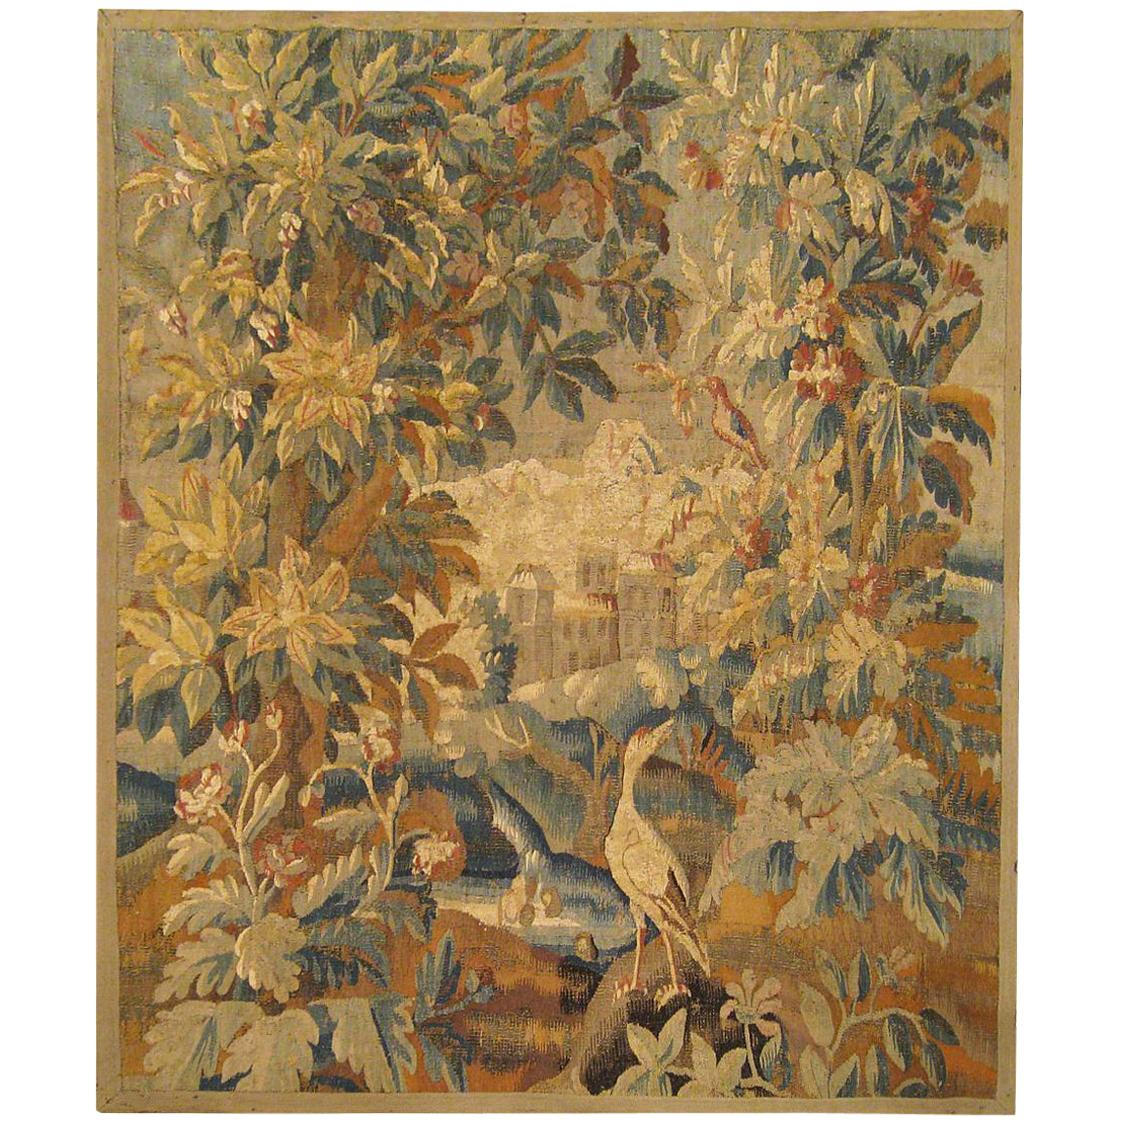 17th Cent. Flemish Verdure Landscape Tapestry, an Exotic Bird & A Lush Setting